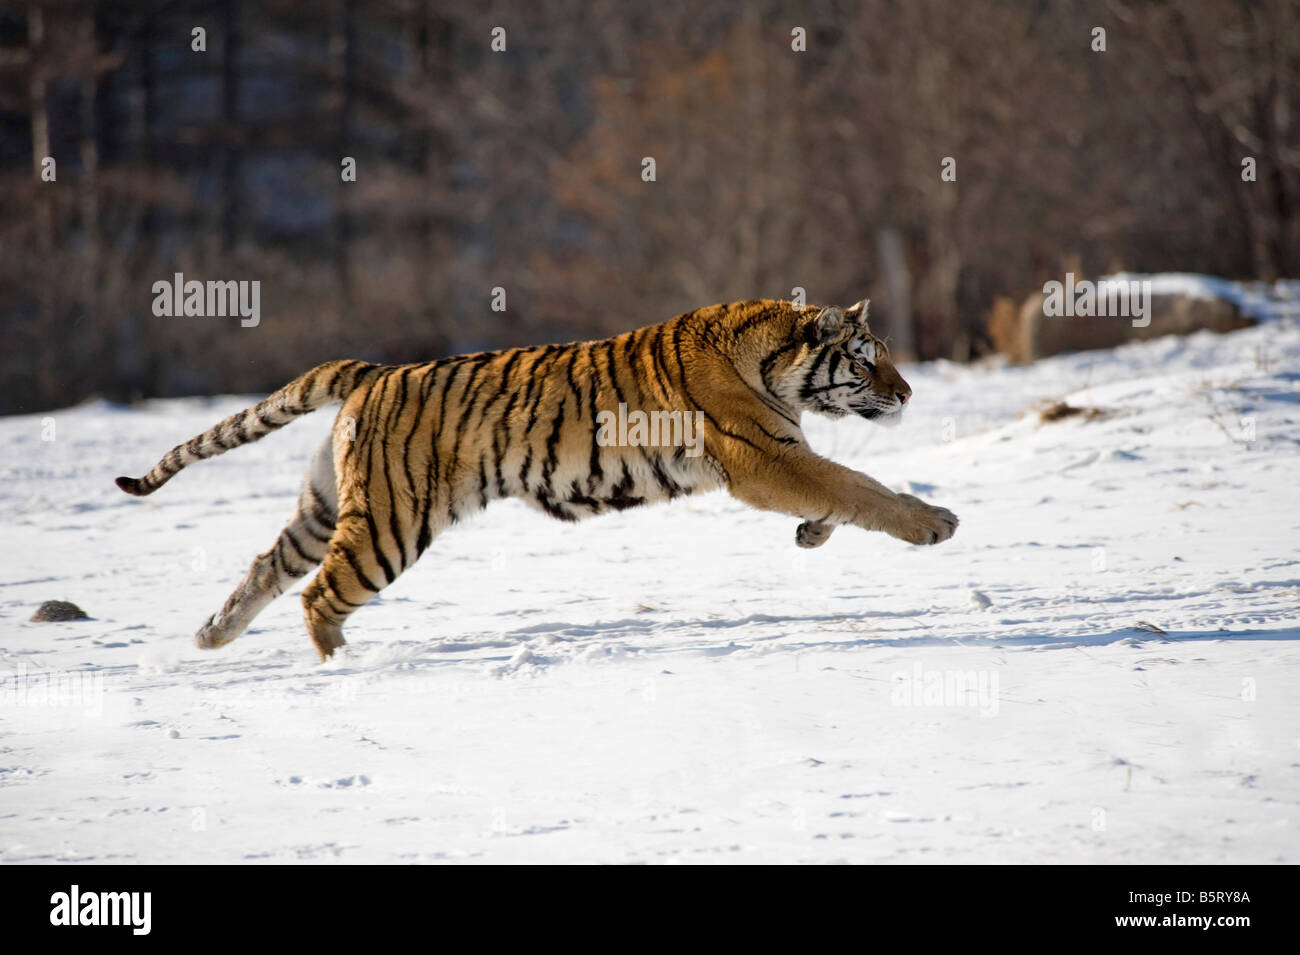 Amur or Siberian tiger Panthera tigris altaica running on snow in north east China Heilongjiang - Stock Image